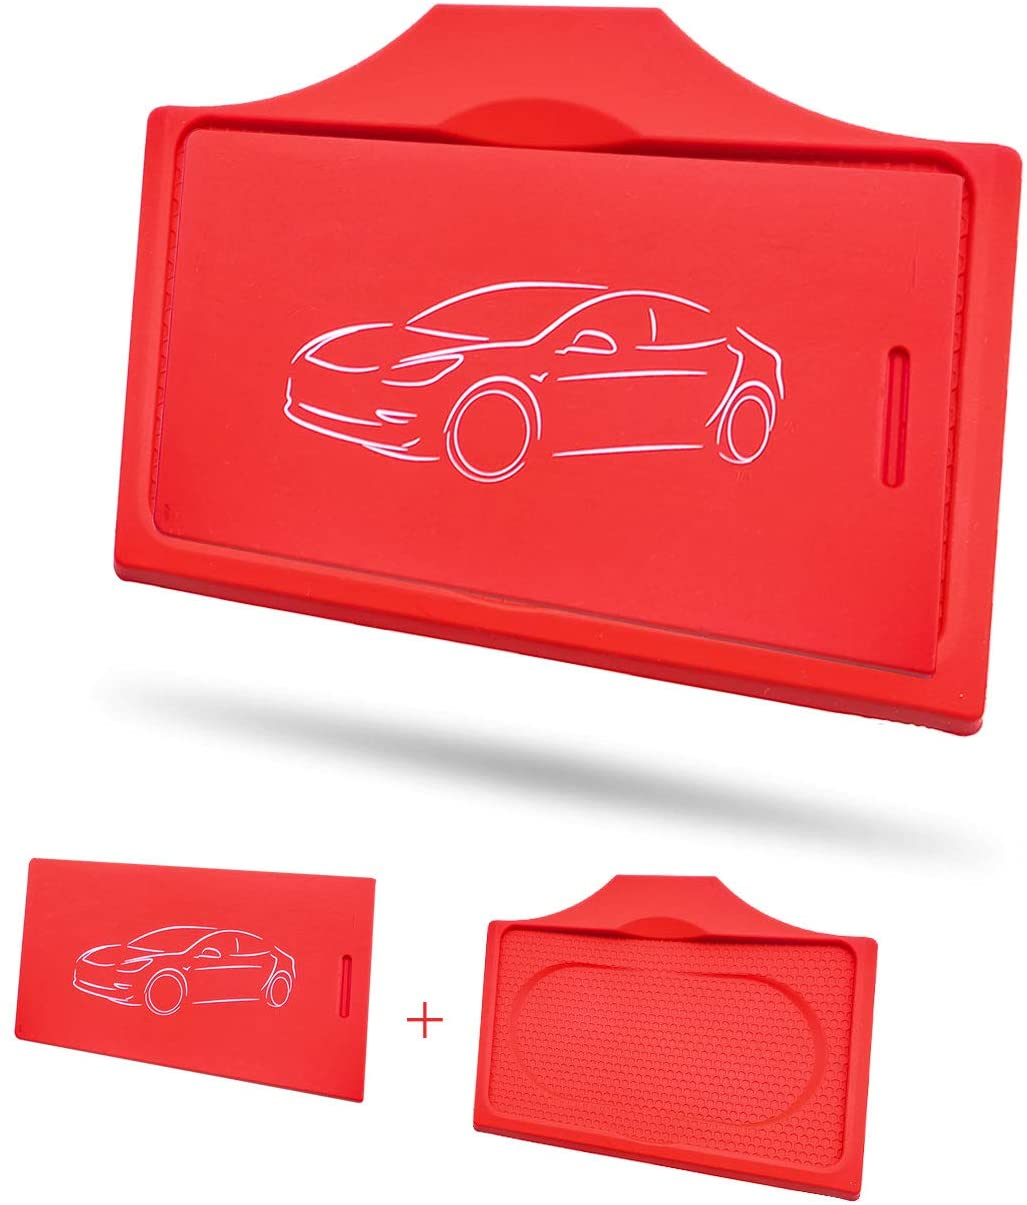 Tesla Model 3 Center Console Red Anti-Slip Key Card Holder & Silicone Key Chain (Set of 2)